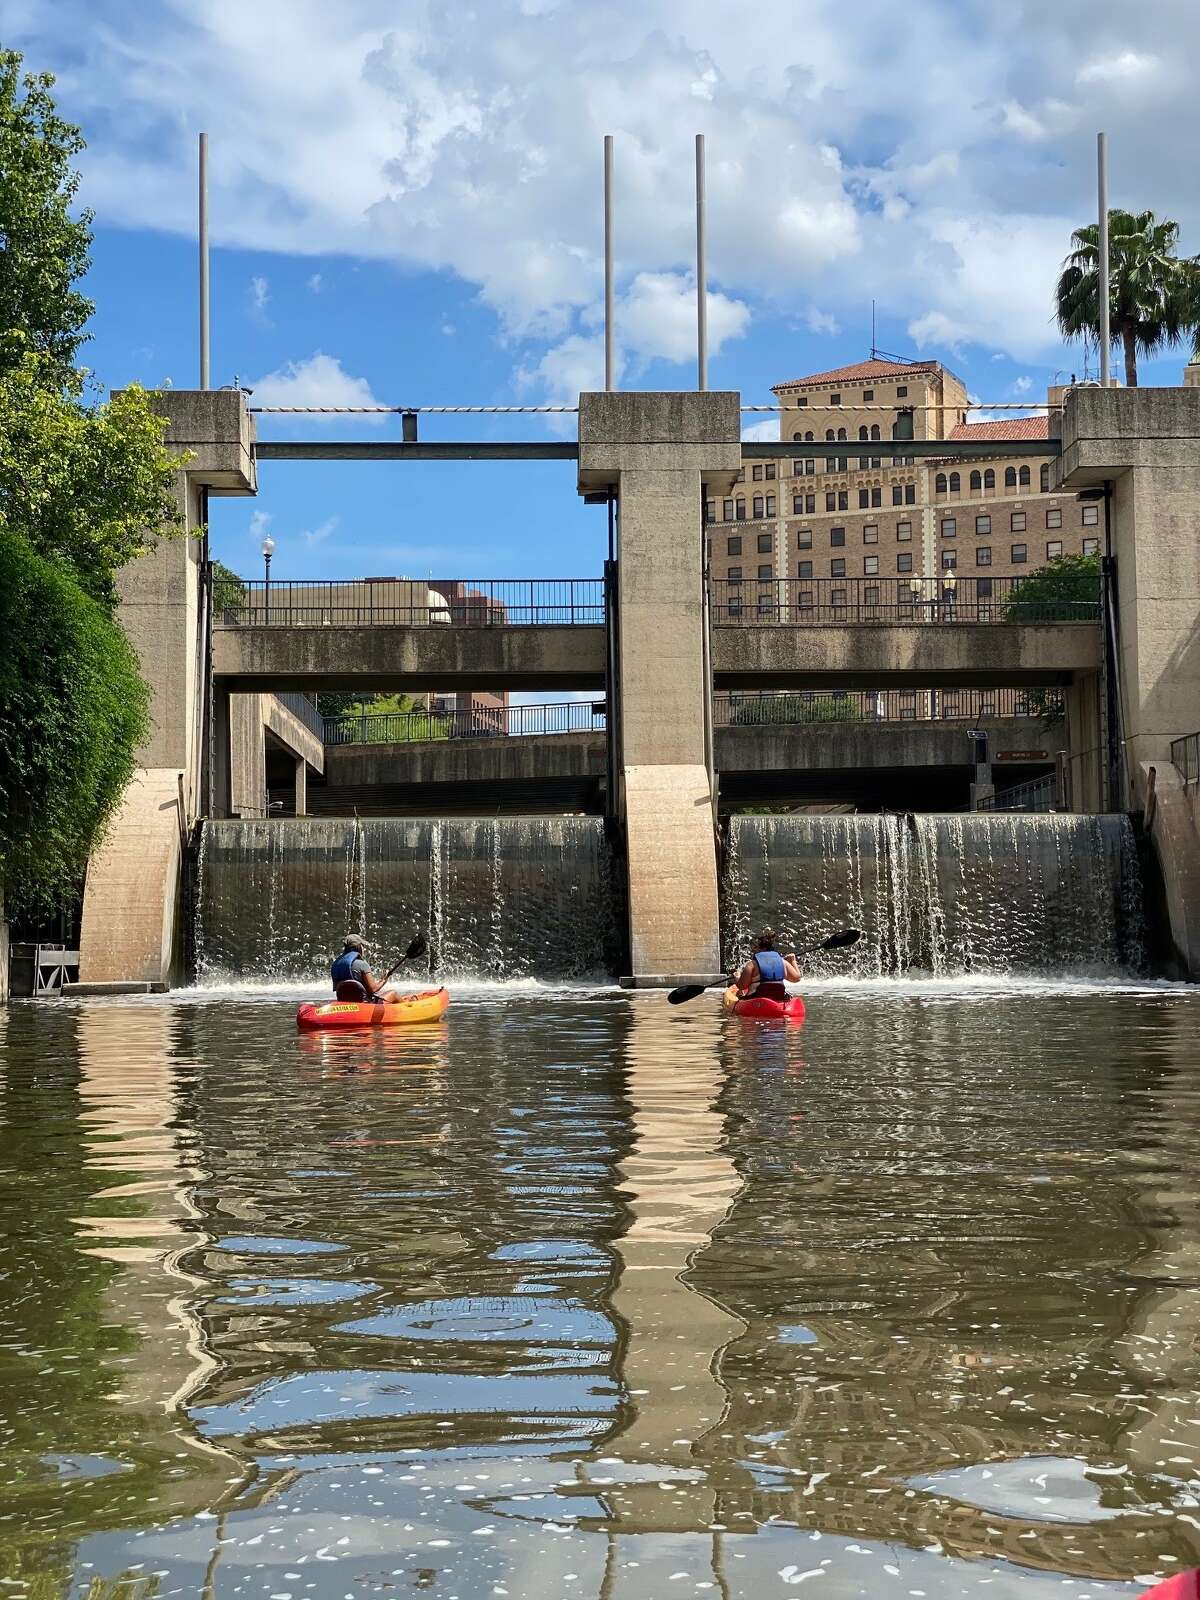 With people desperate to get out of the house while practicing safe social distancing, Mission Adventure Tours's kayak rental sales have soared this year.